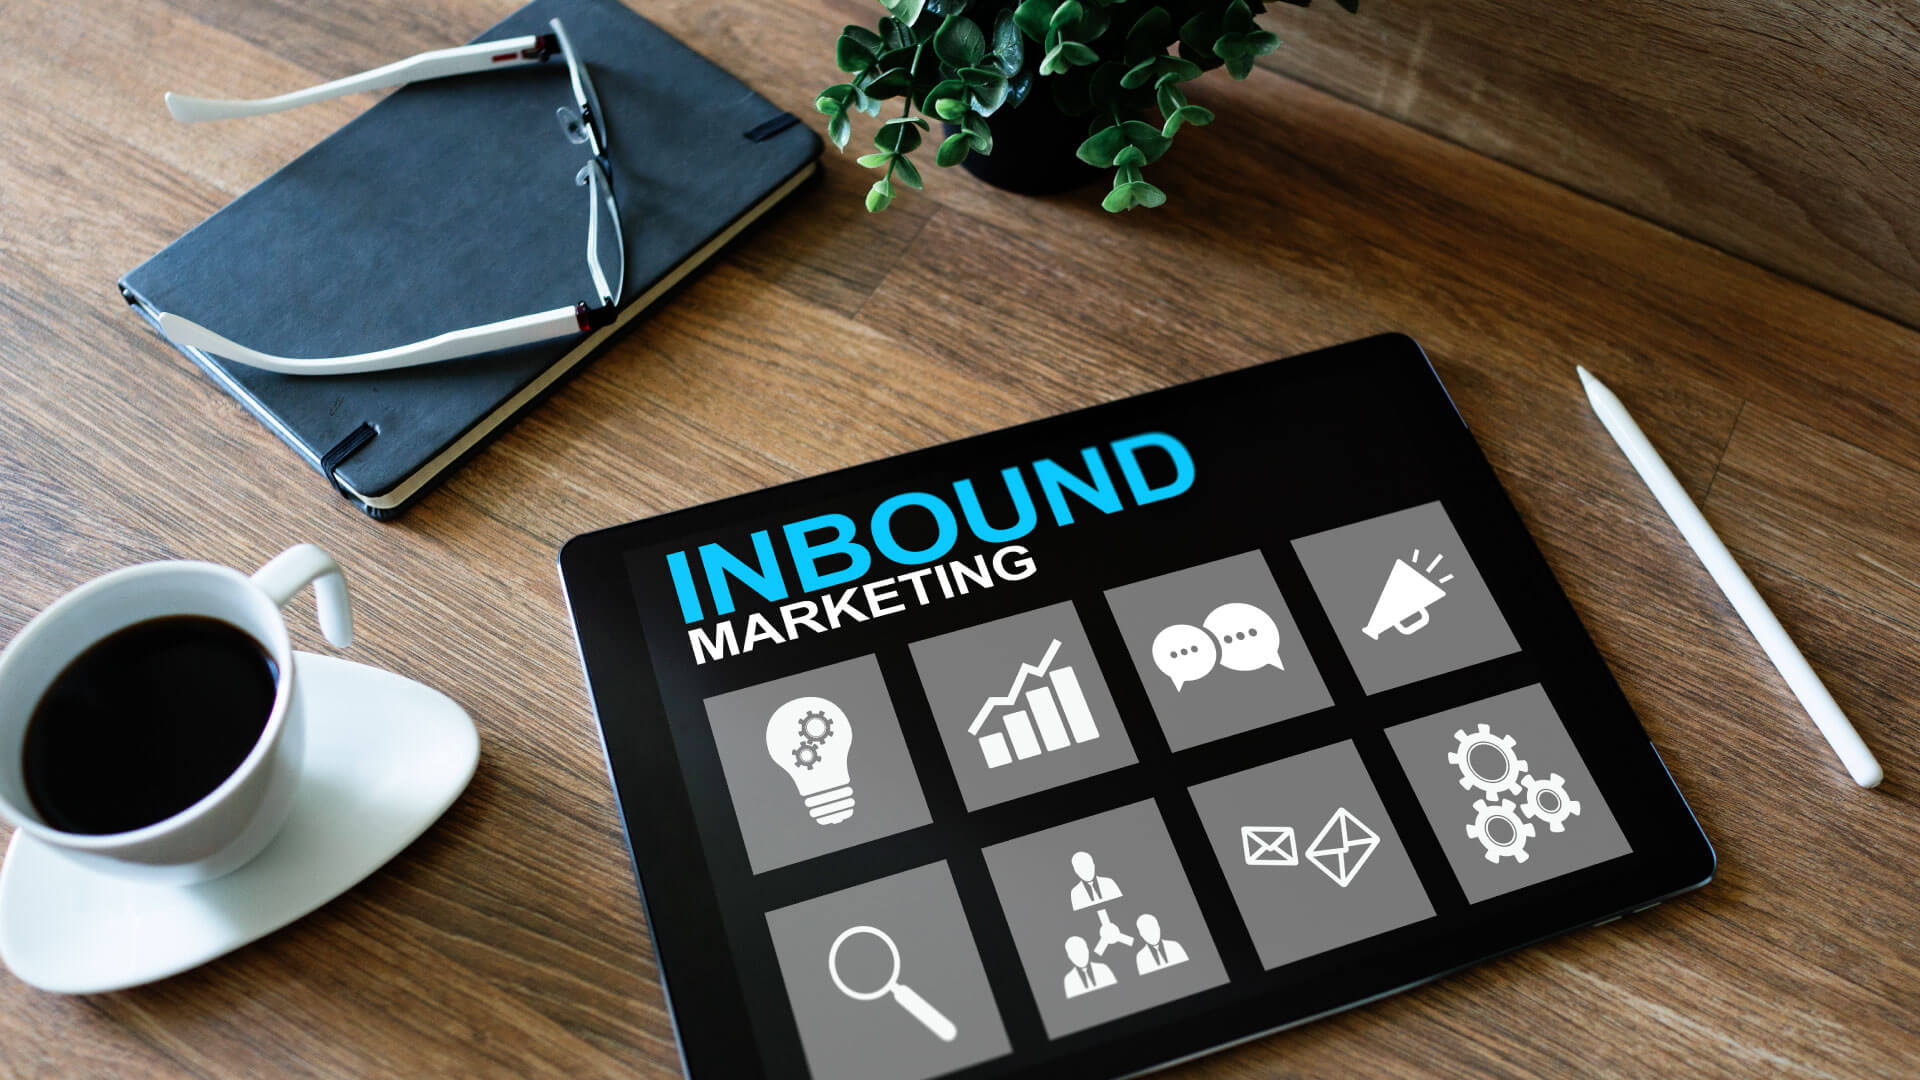 4 elementos clave de la metodología del inbound marketing